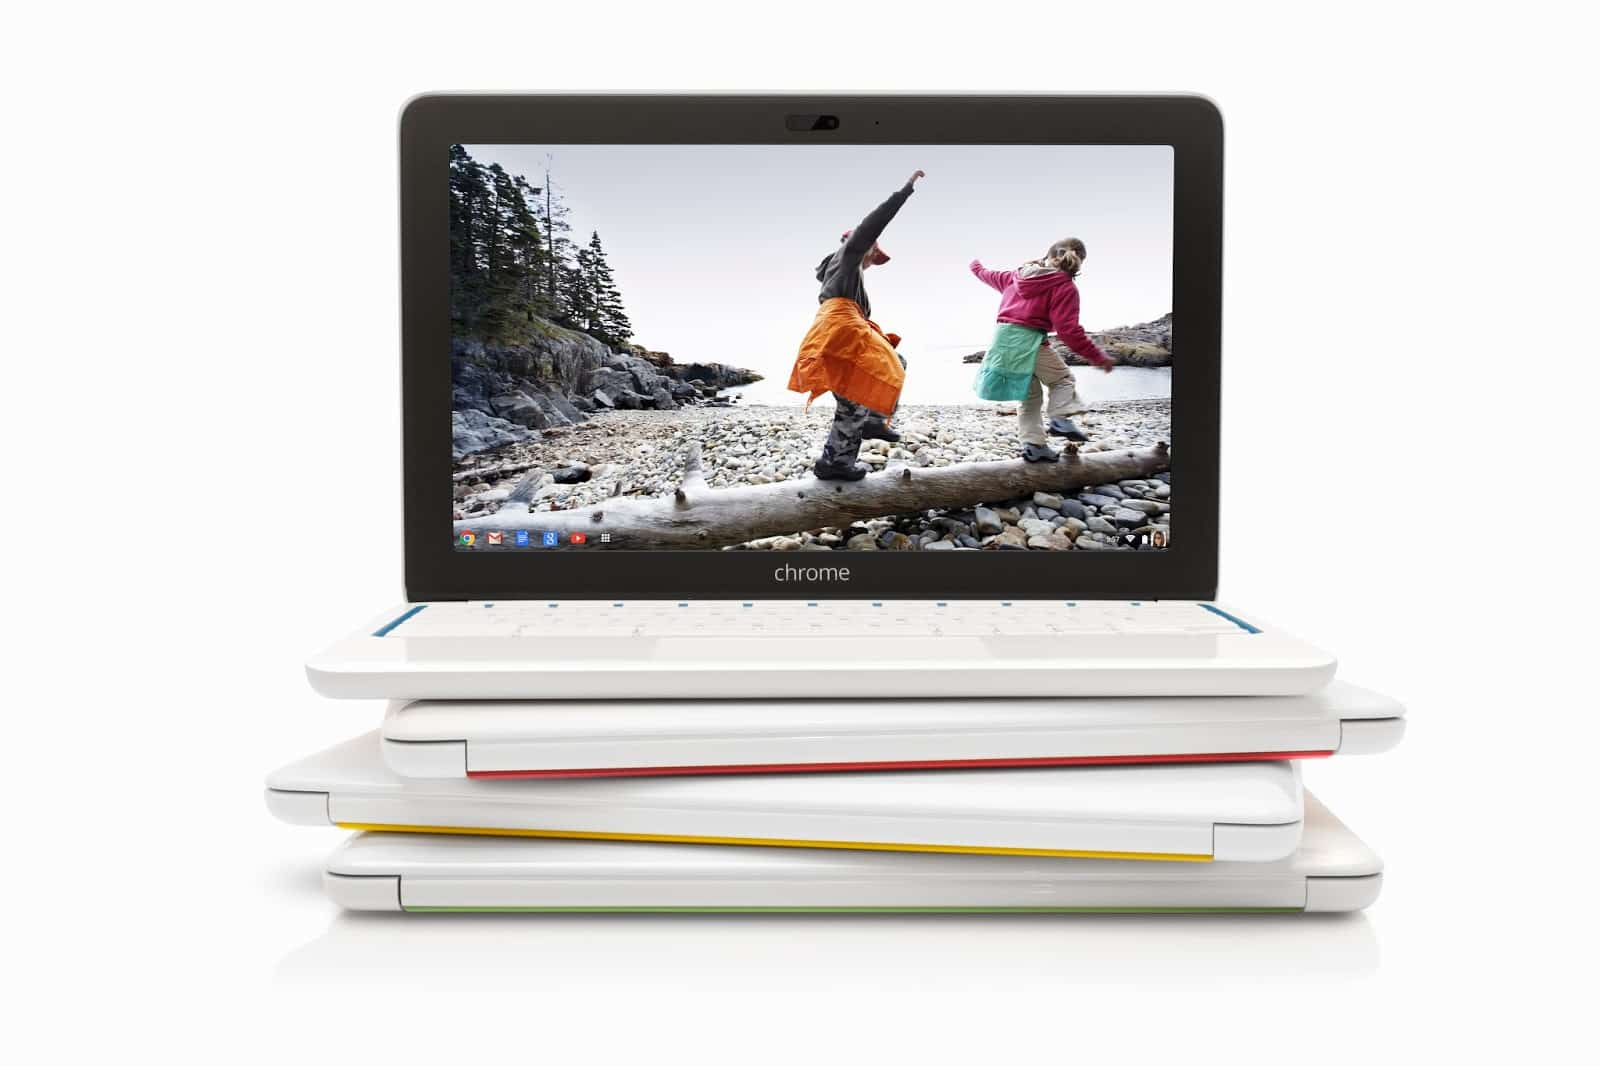 Chromebook 11 Goes on Sale in Australia for AUD 399